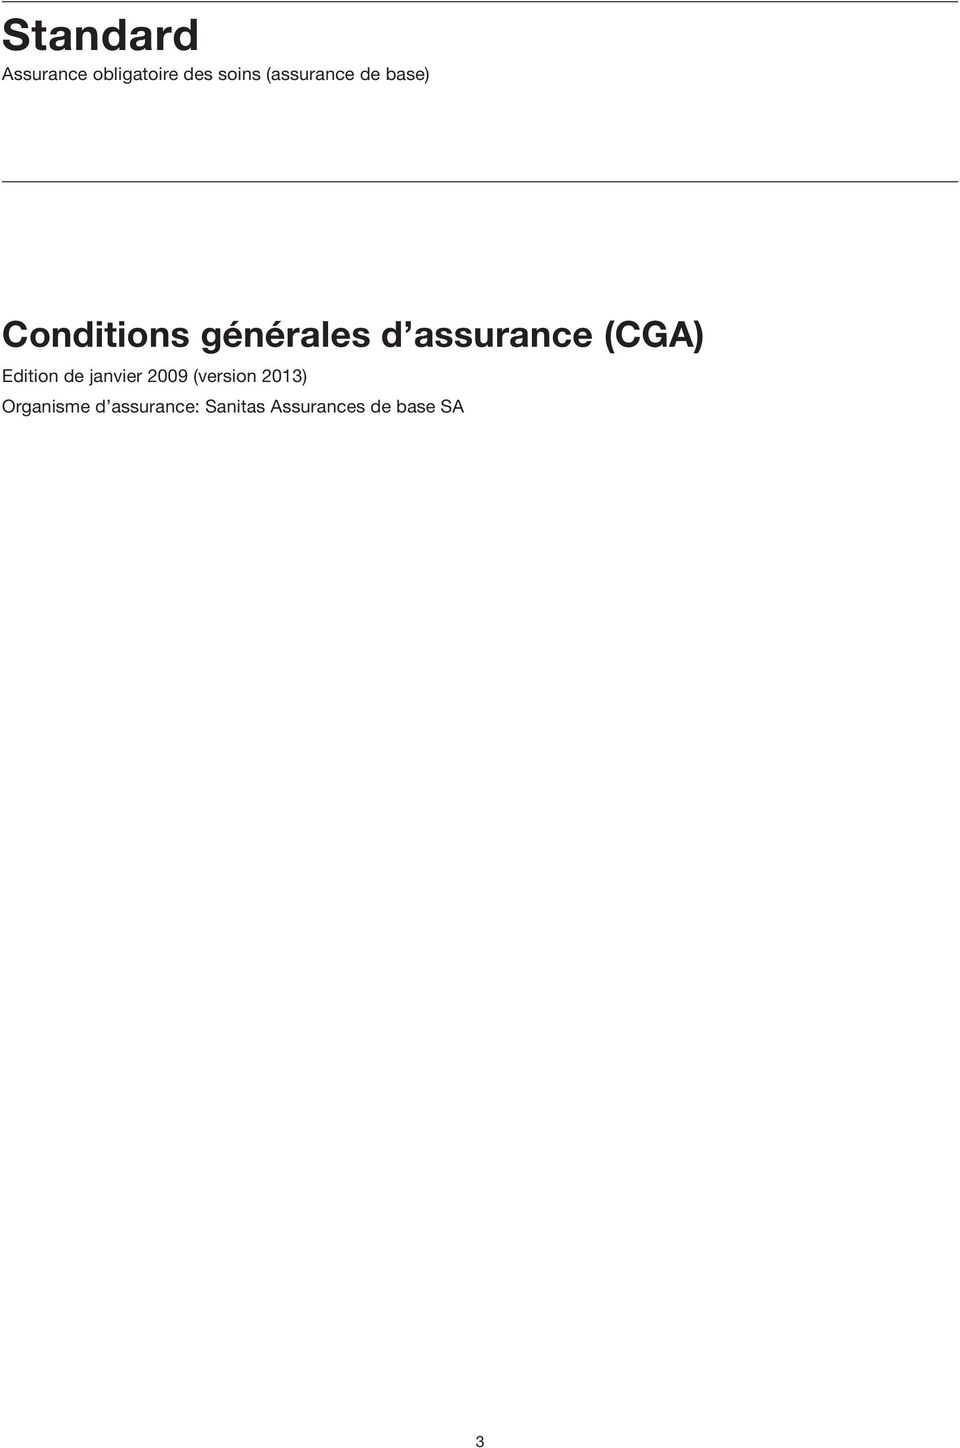 assurance (CGA) Edition de janvier 2009 (version